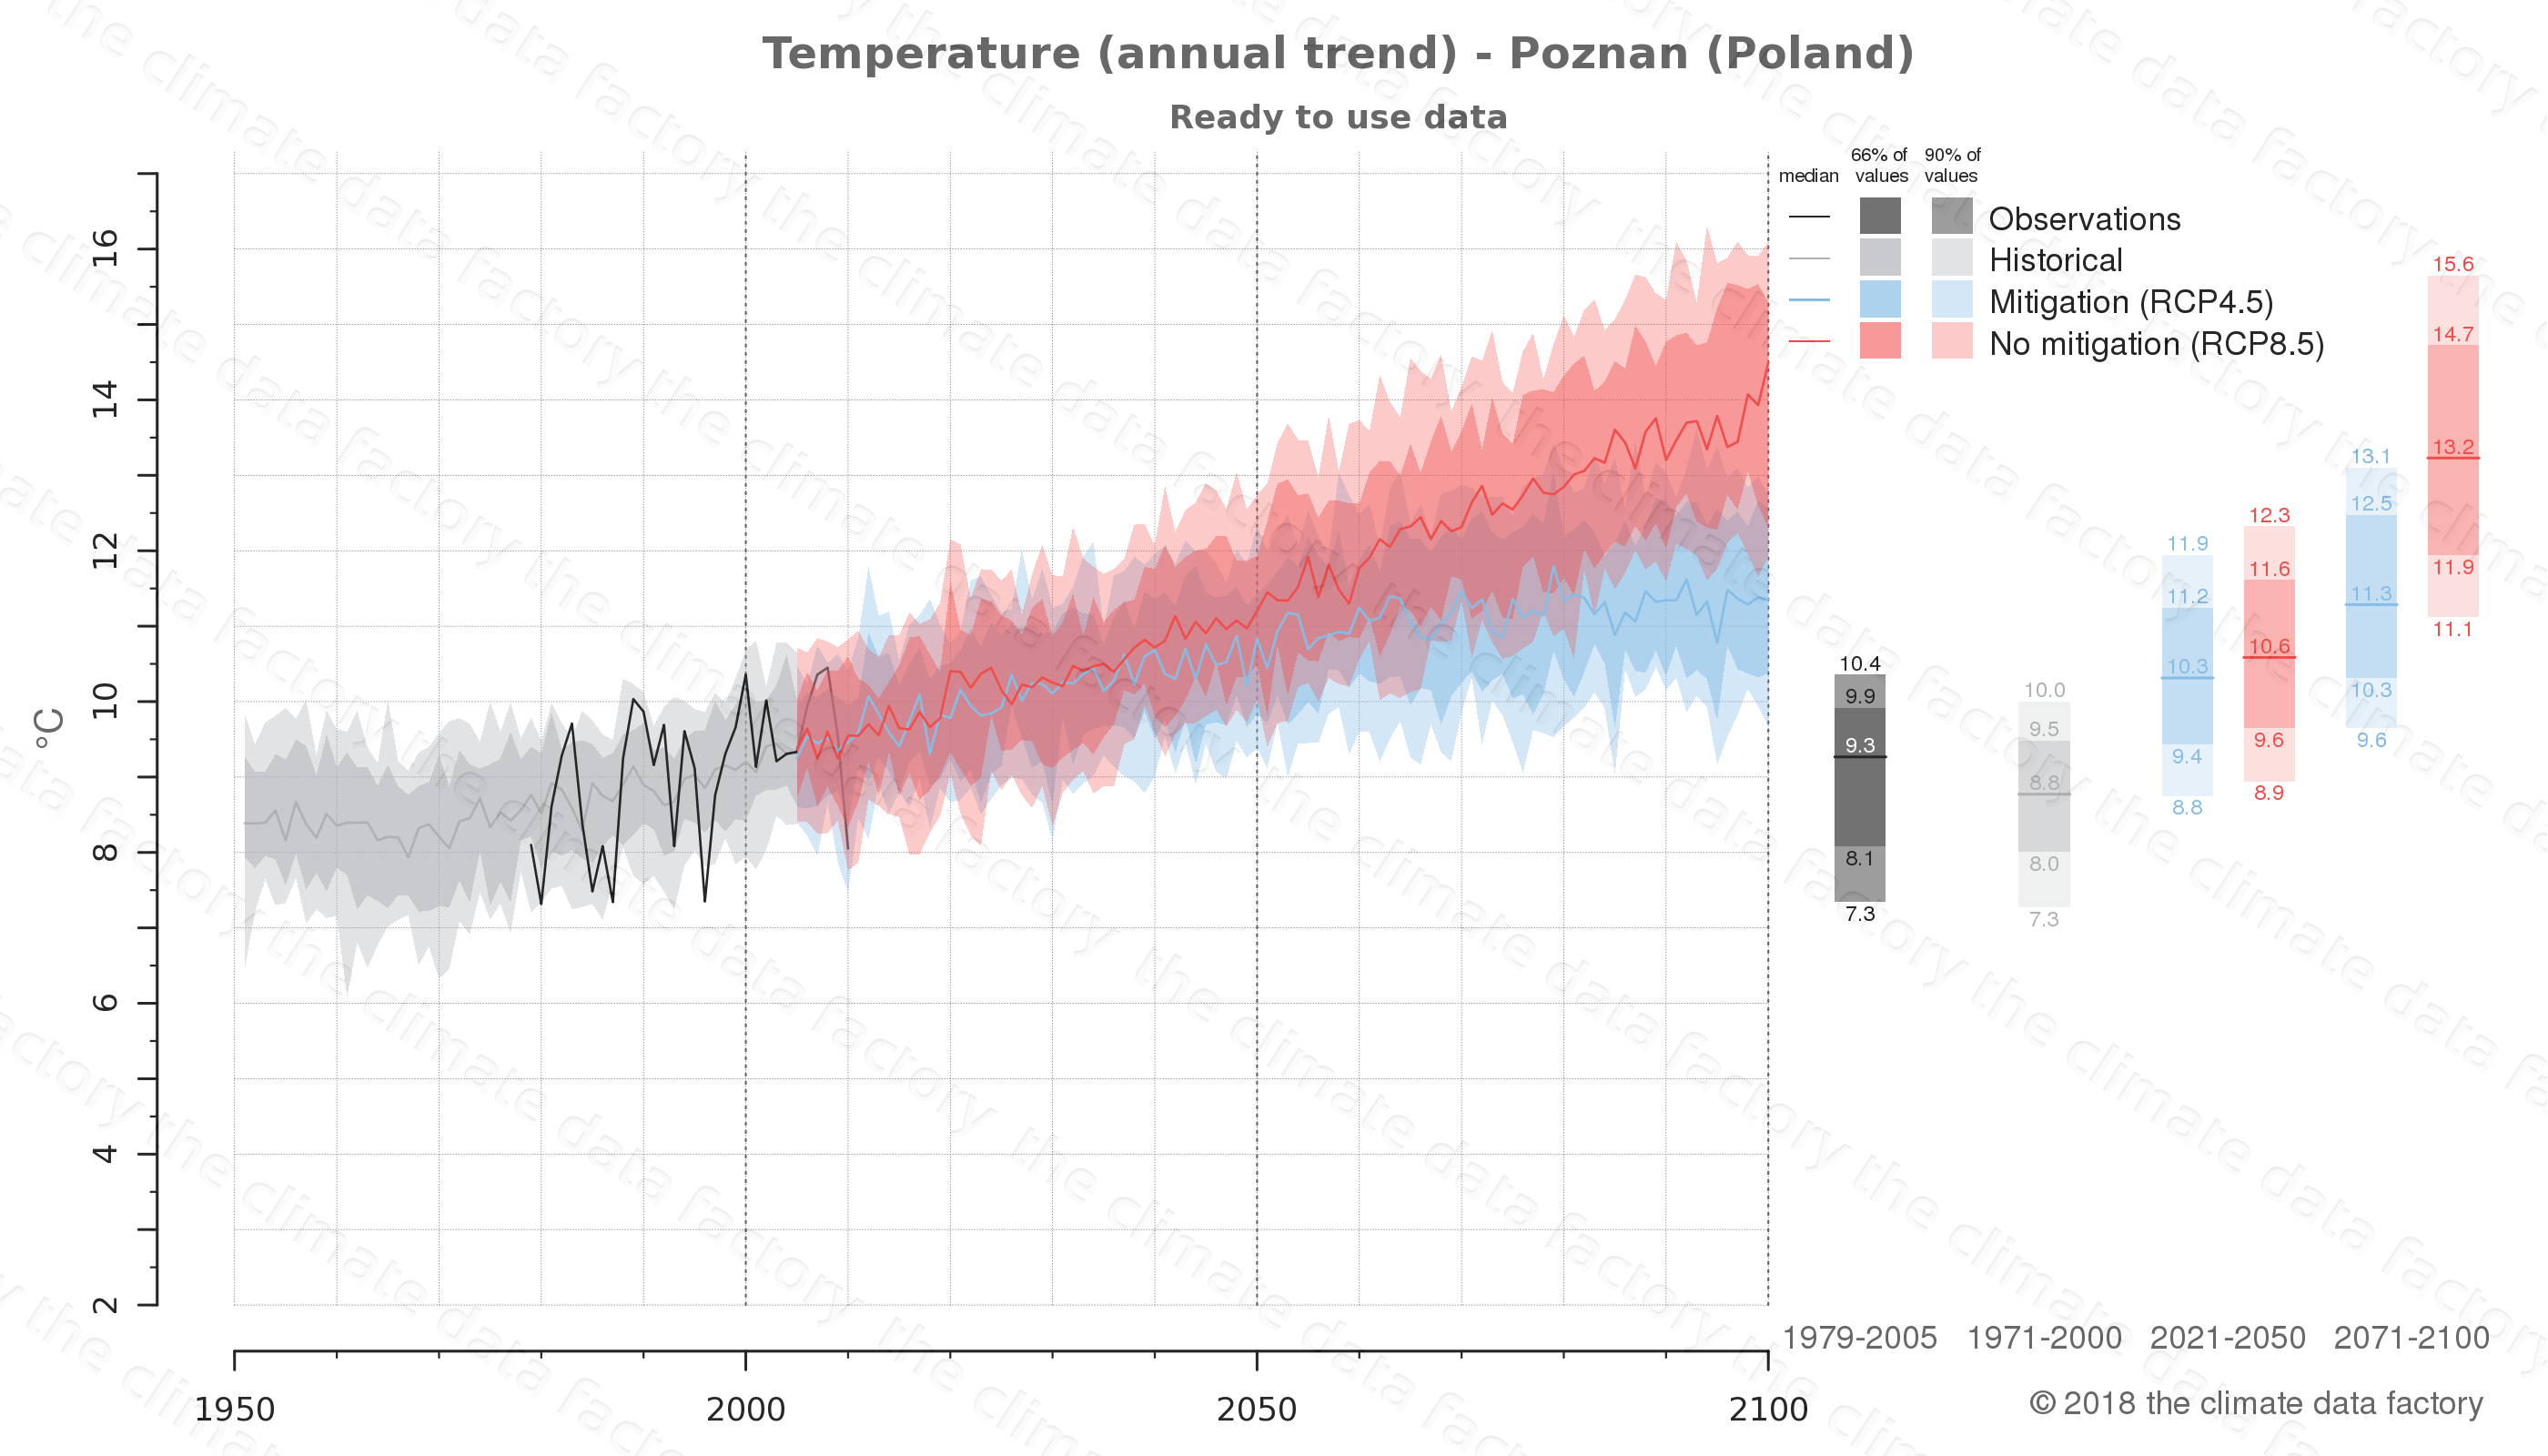 climate change data policy adaptation climate graph city data temperature poznan poland